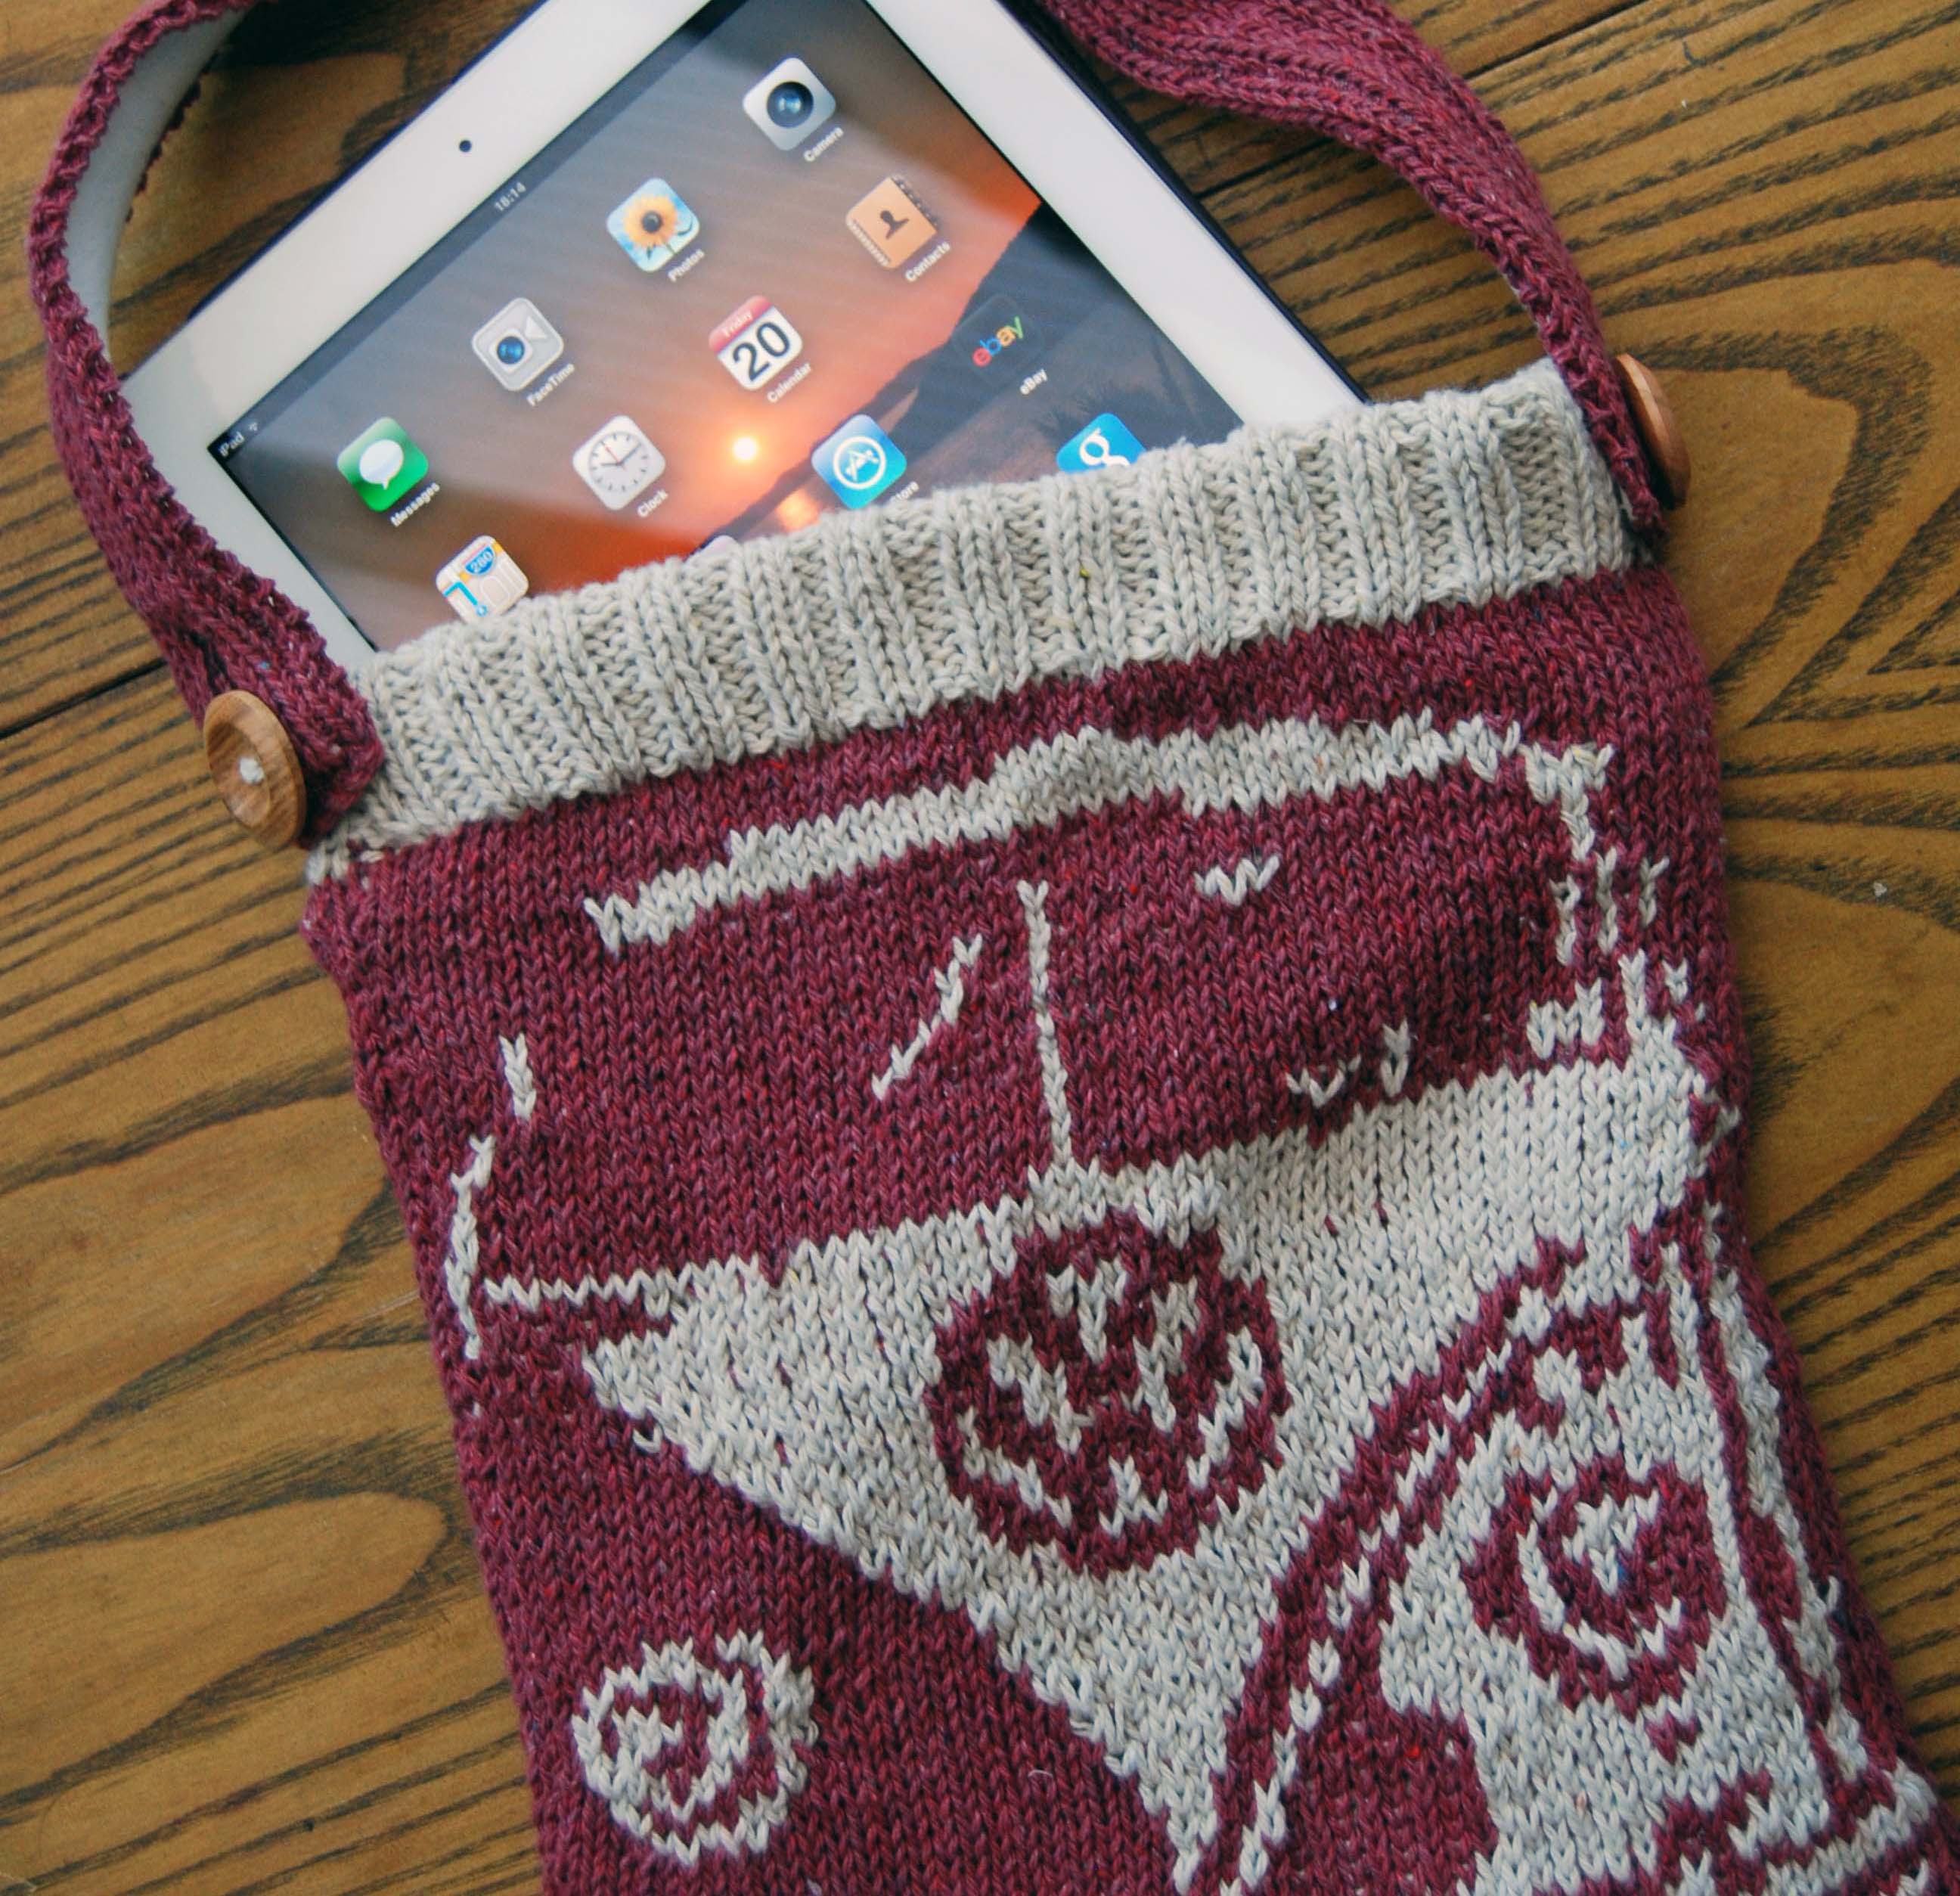 Splitty Bag with ipad - square image